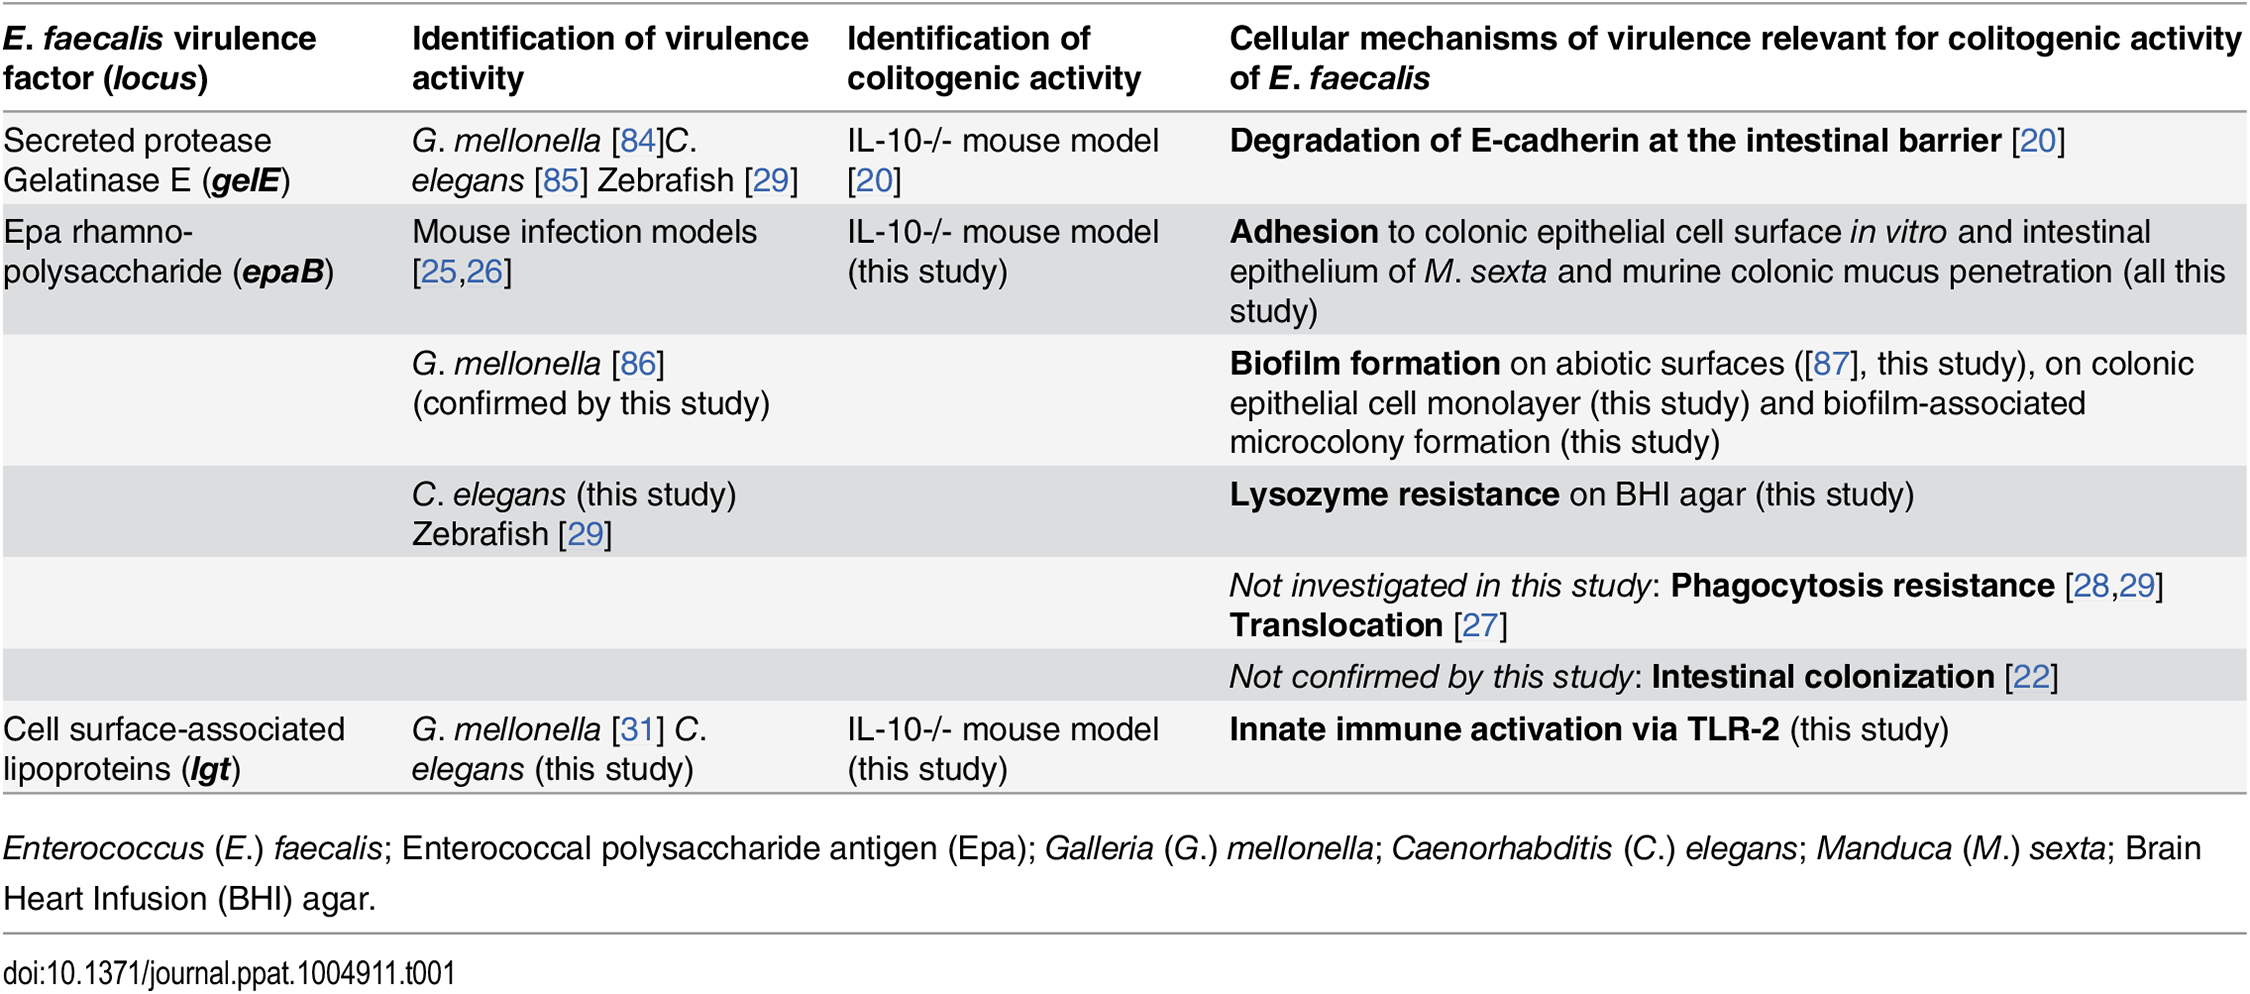 Virulence factors identified to be relevant for colitogenic activity of <i>E</i>. <i>faecalis</i> in the IL-10-/- mouse model and their proposed cellular mechanisms.